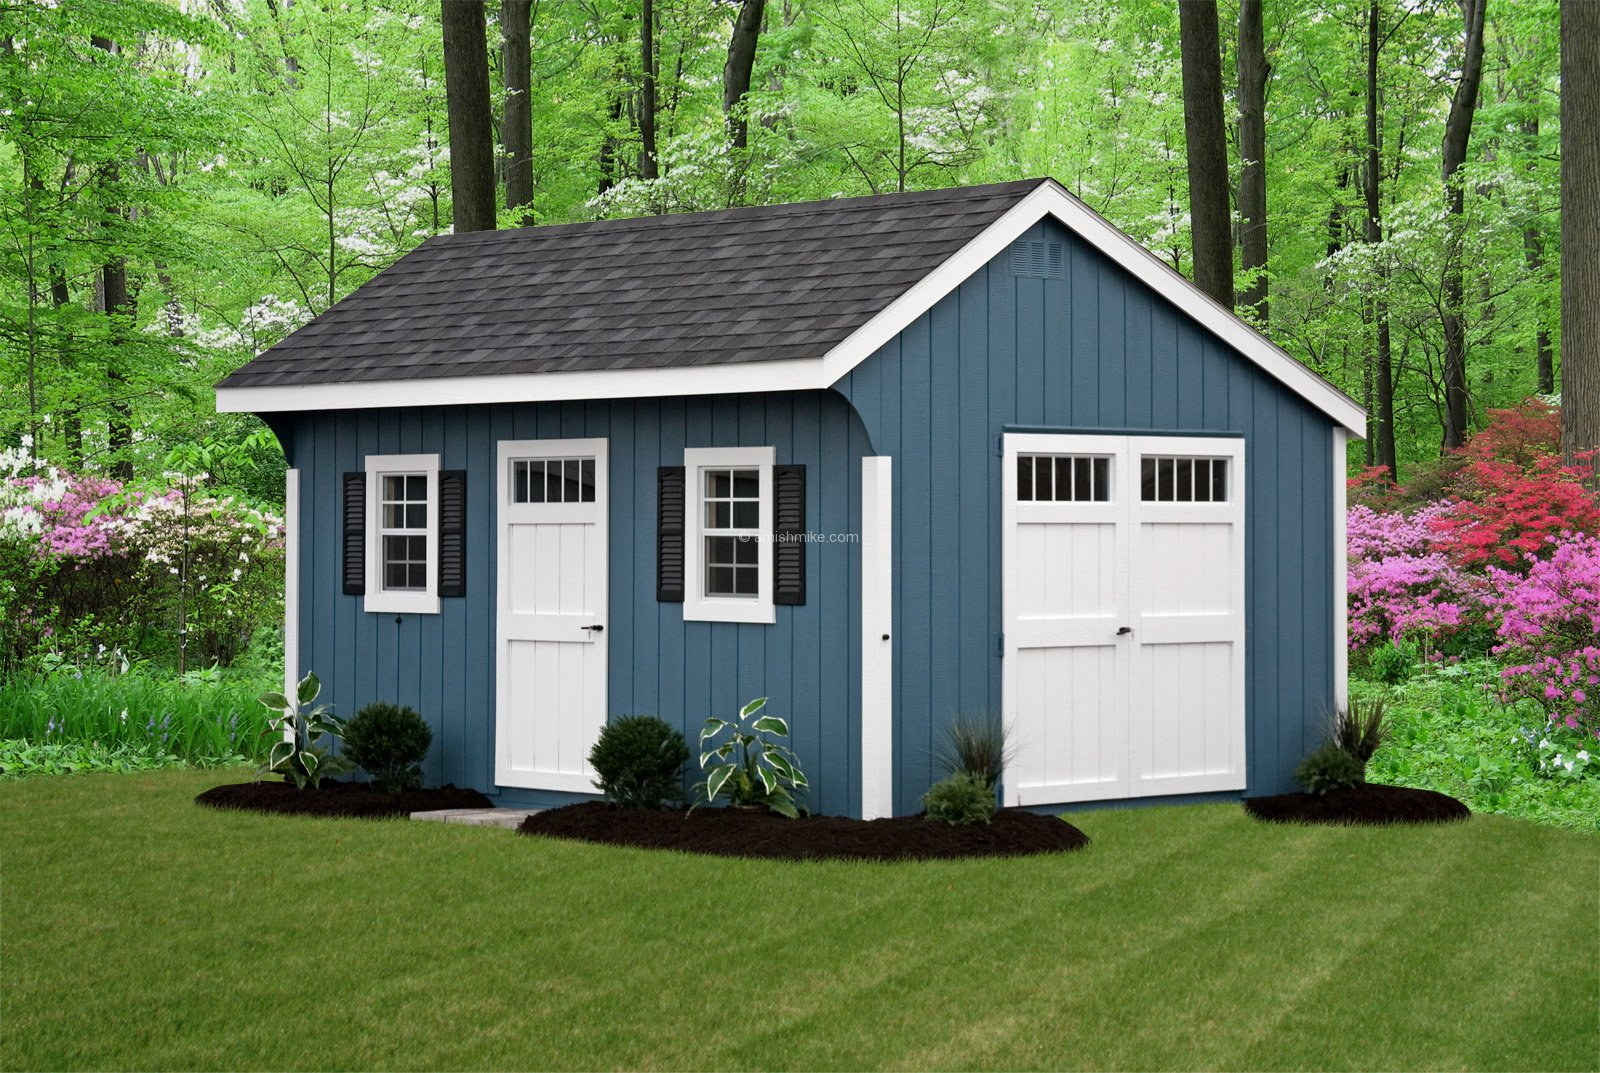 Amish Garden Sheds : New england quaker sheds amish mike